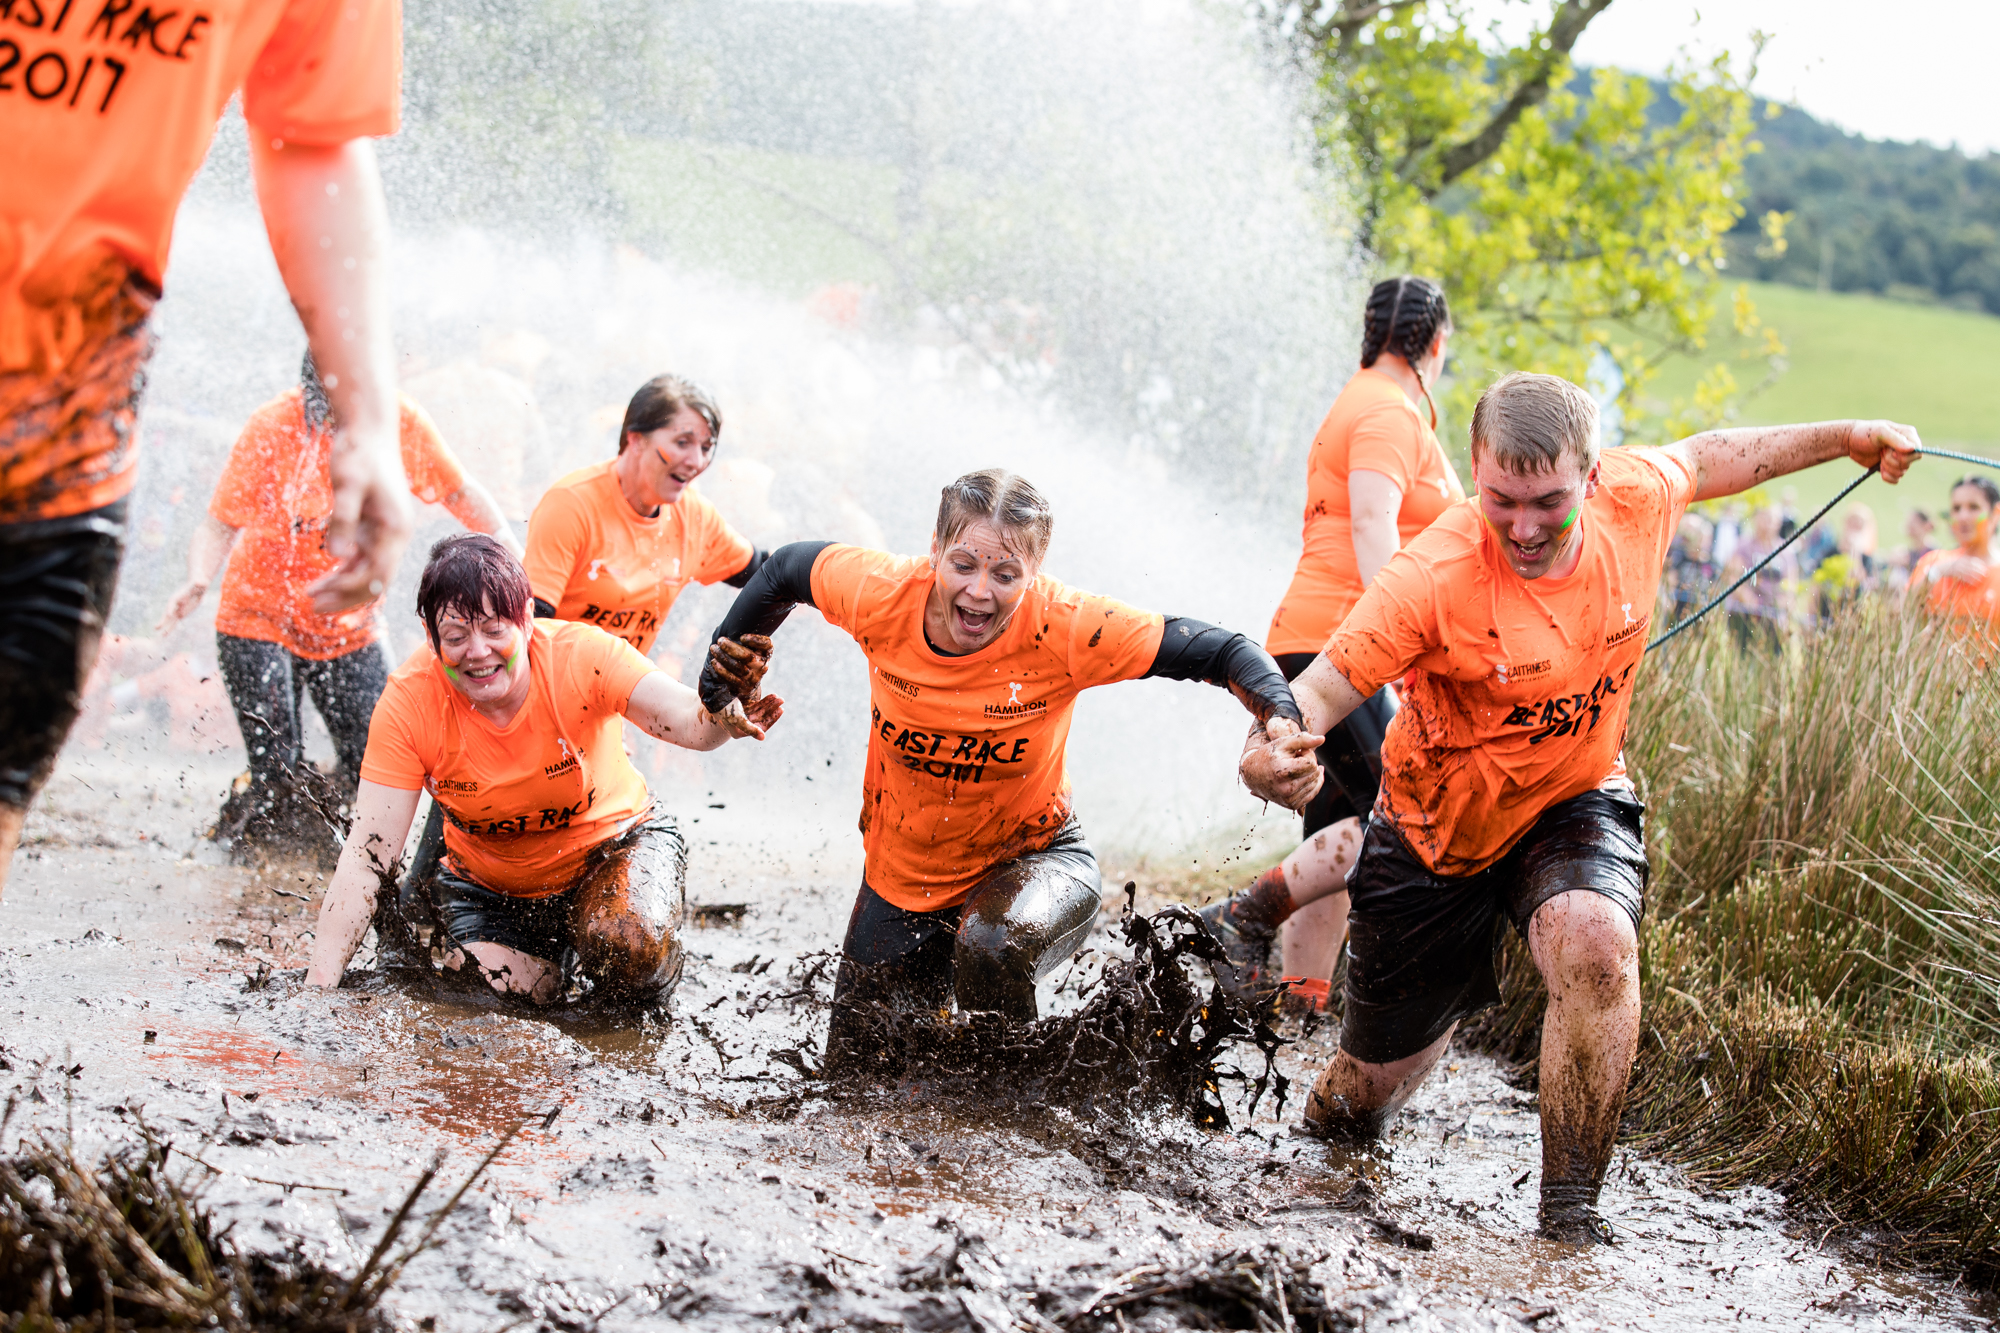 People tackling the Prime Four Beast Race  at Loch Ness - and it was due to be coming to Fife.